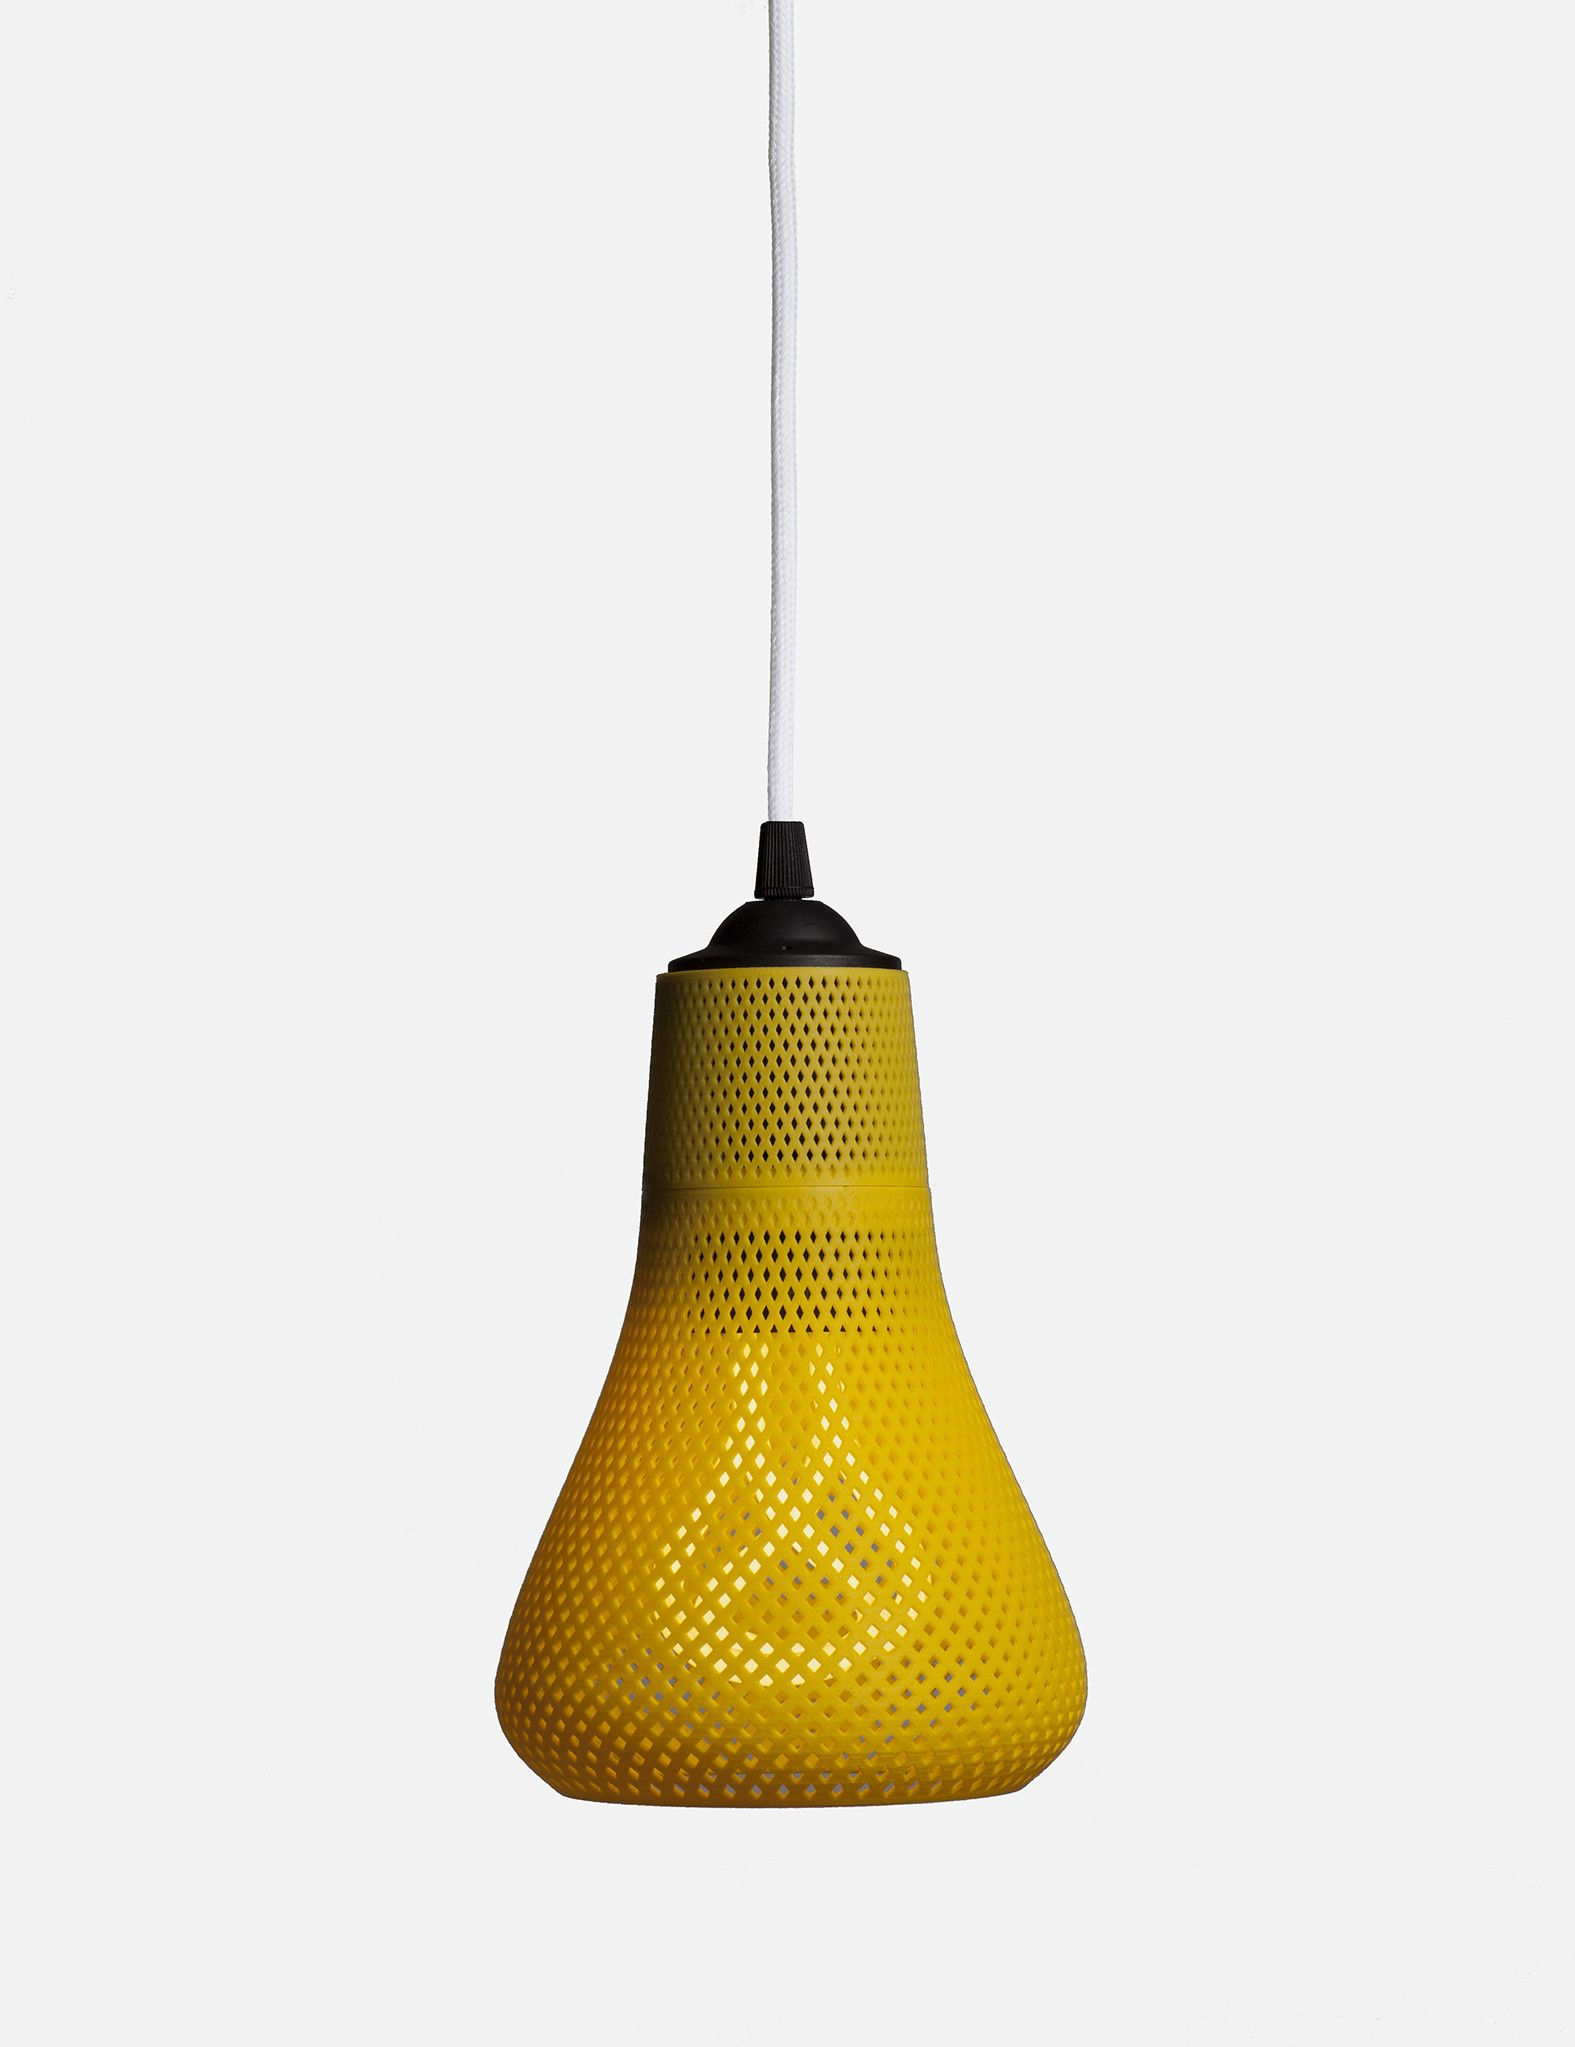 Kayan 3d Printed Lamp Shade Formaliz3d With Baby Plumen Bulb Plumen Bulb Plumen Lamp